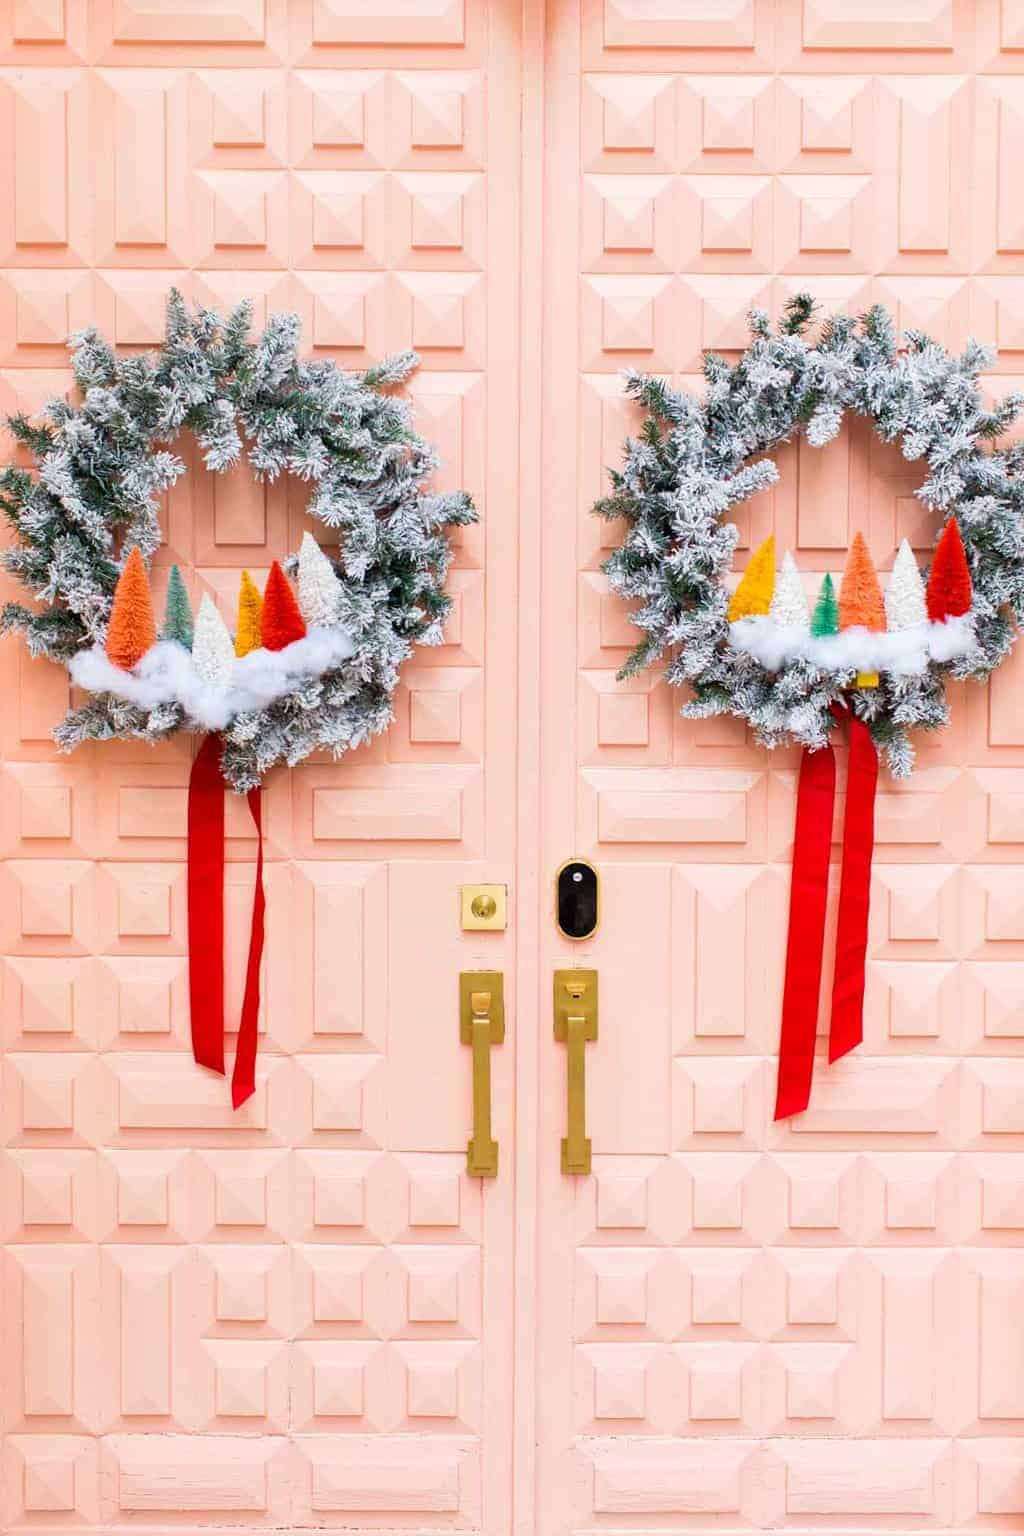 photo of double pink doors with wreaths for Christmas